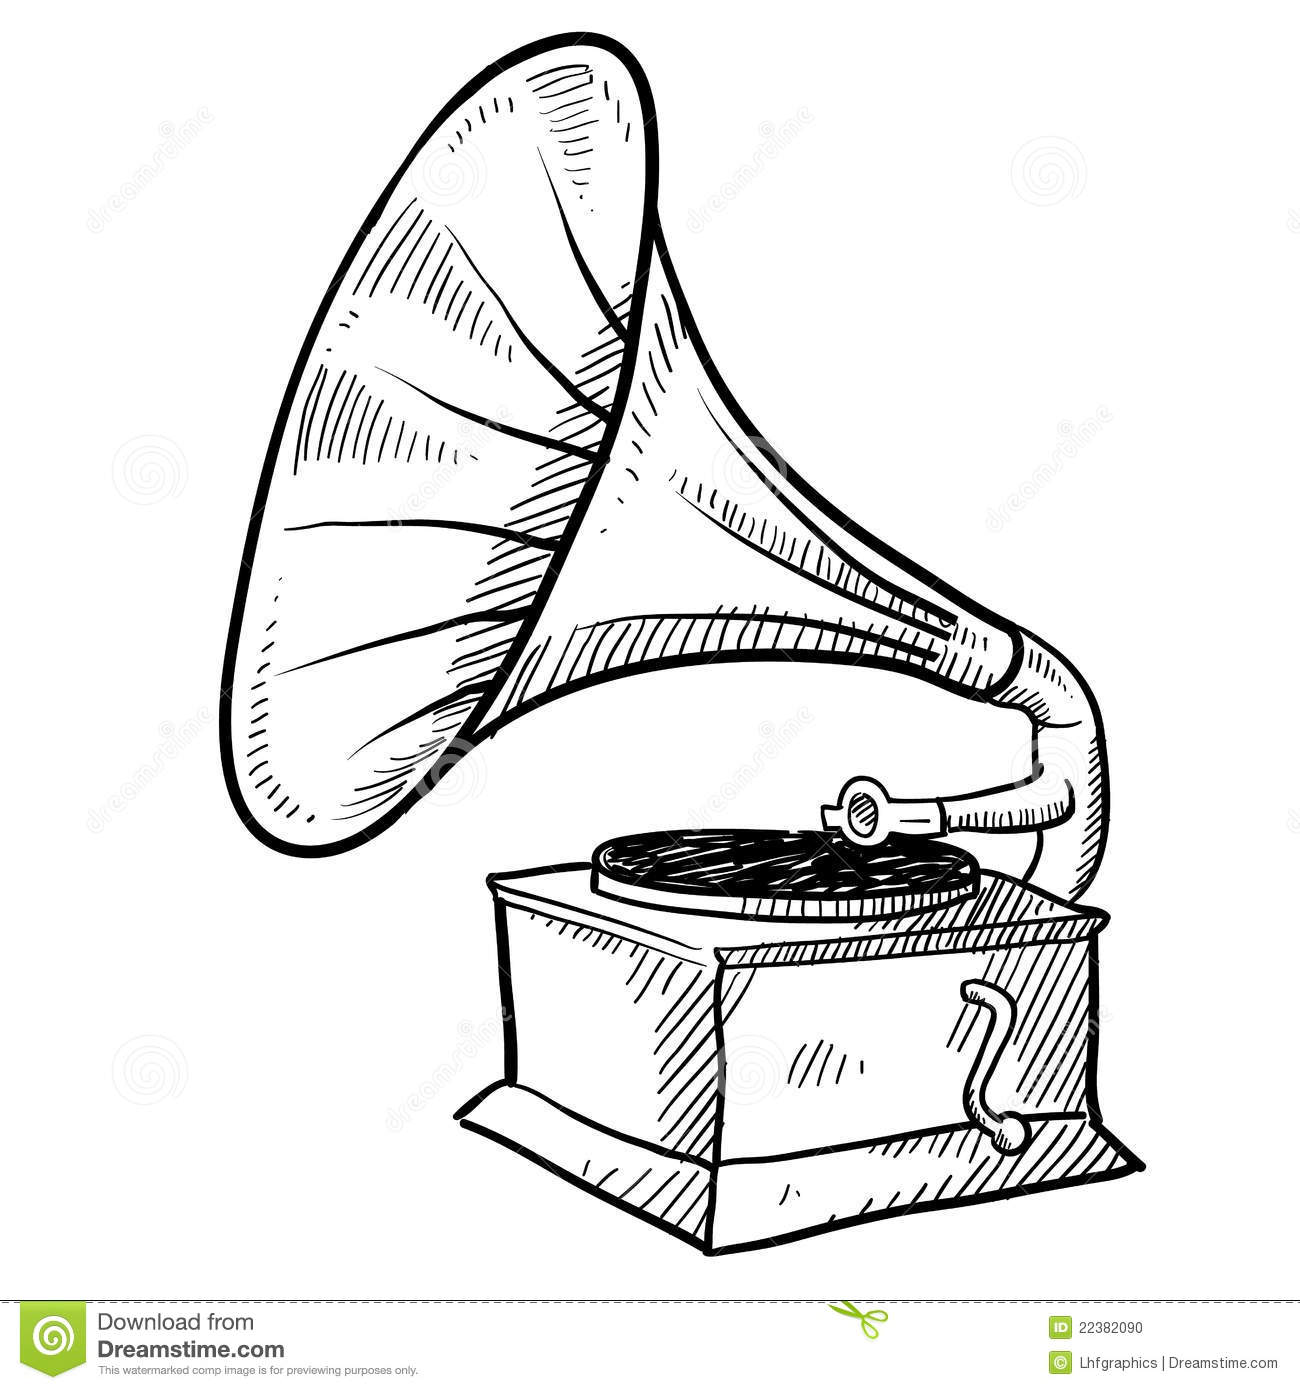 Doodle style antique phonograph or record player in vector format.